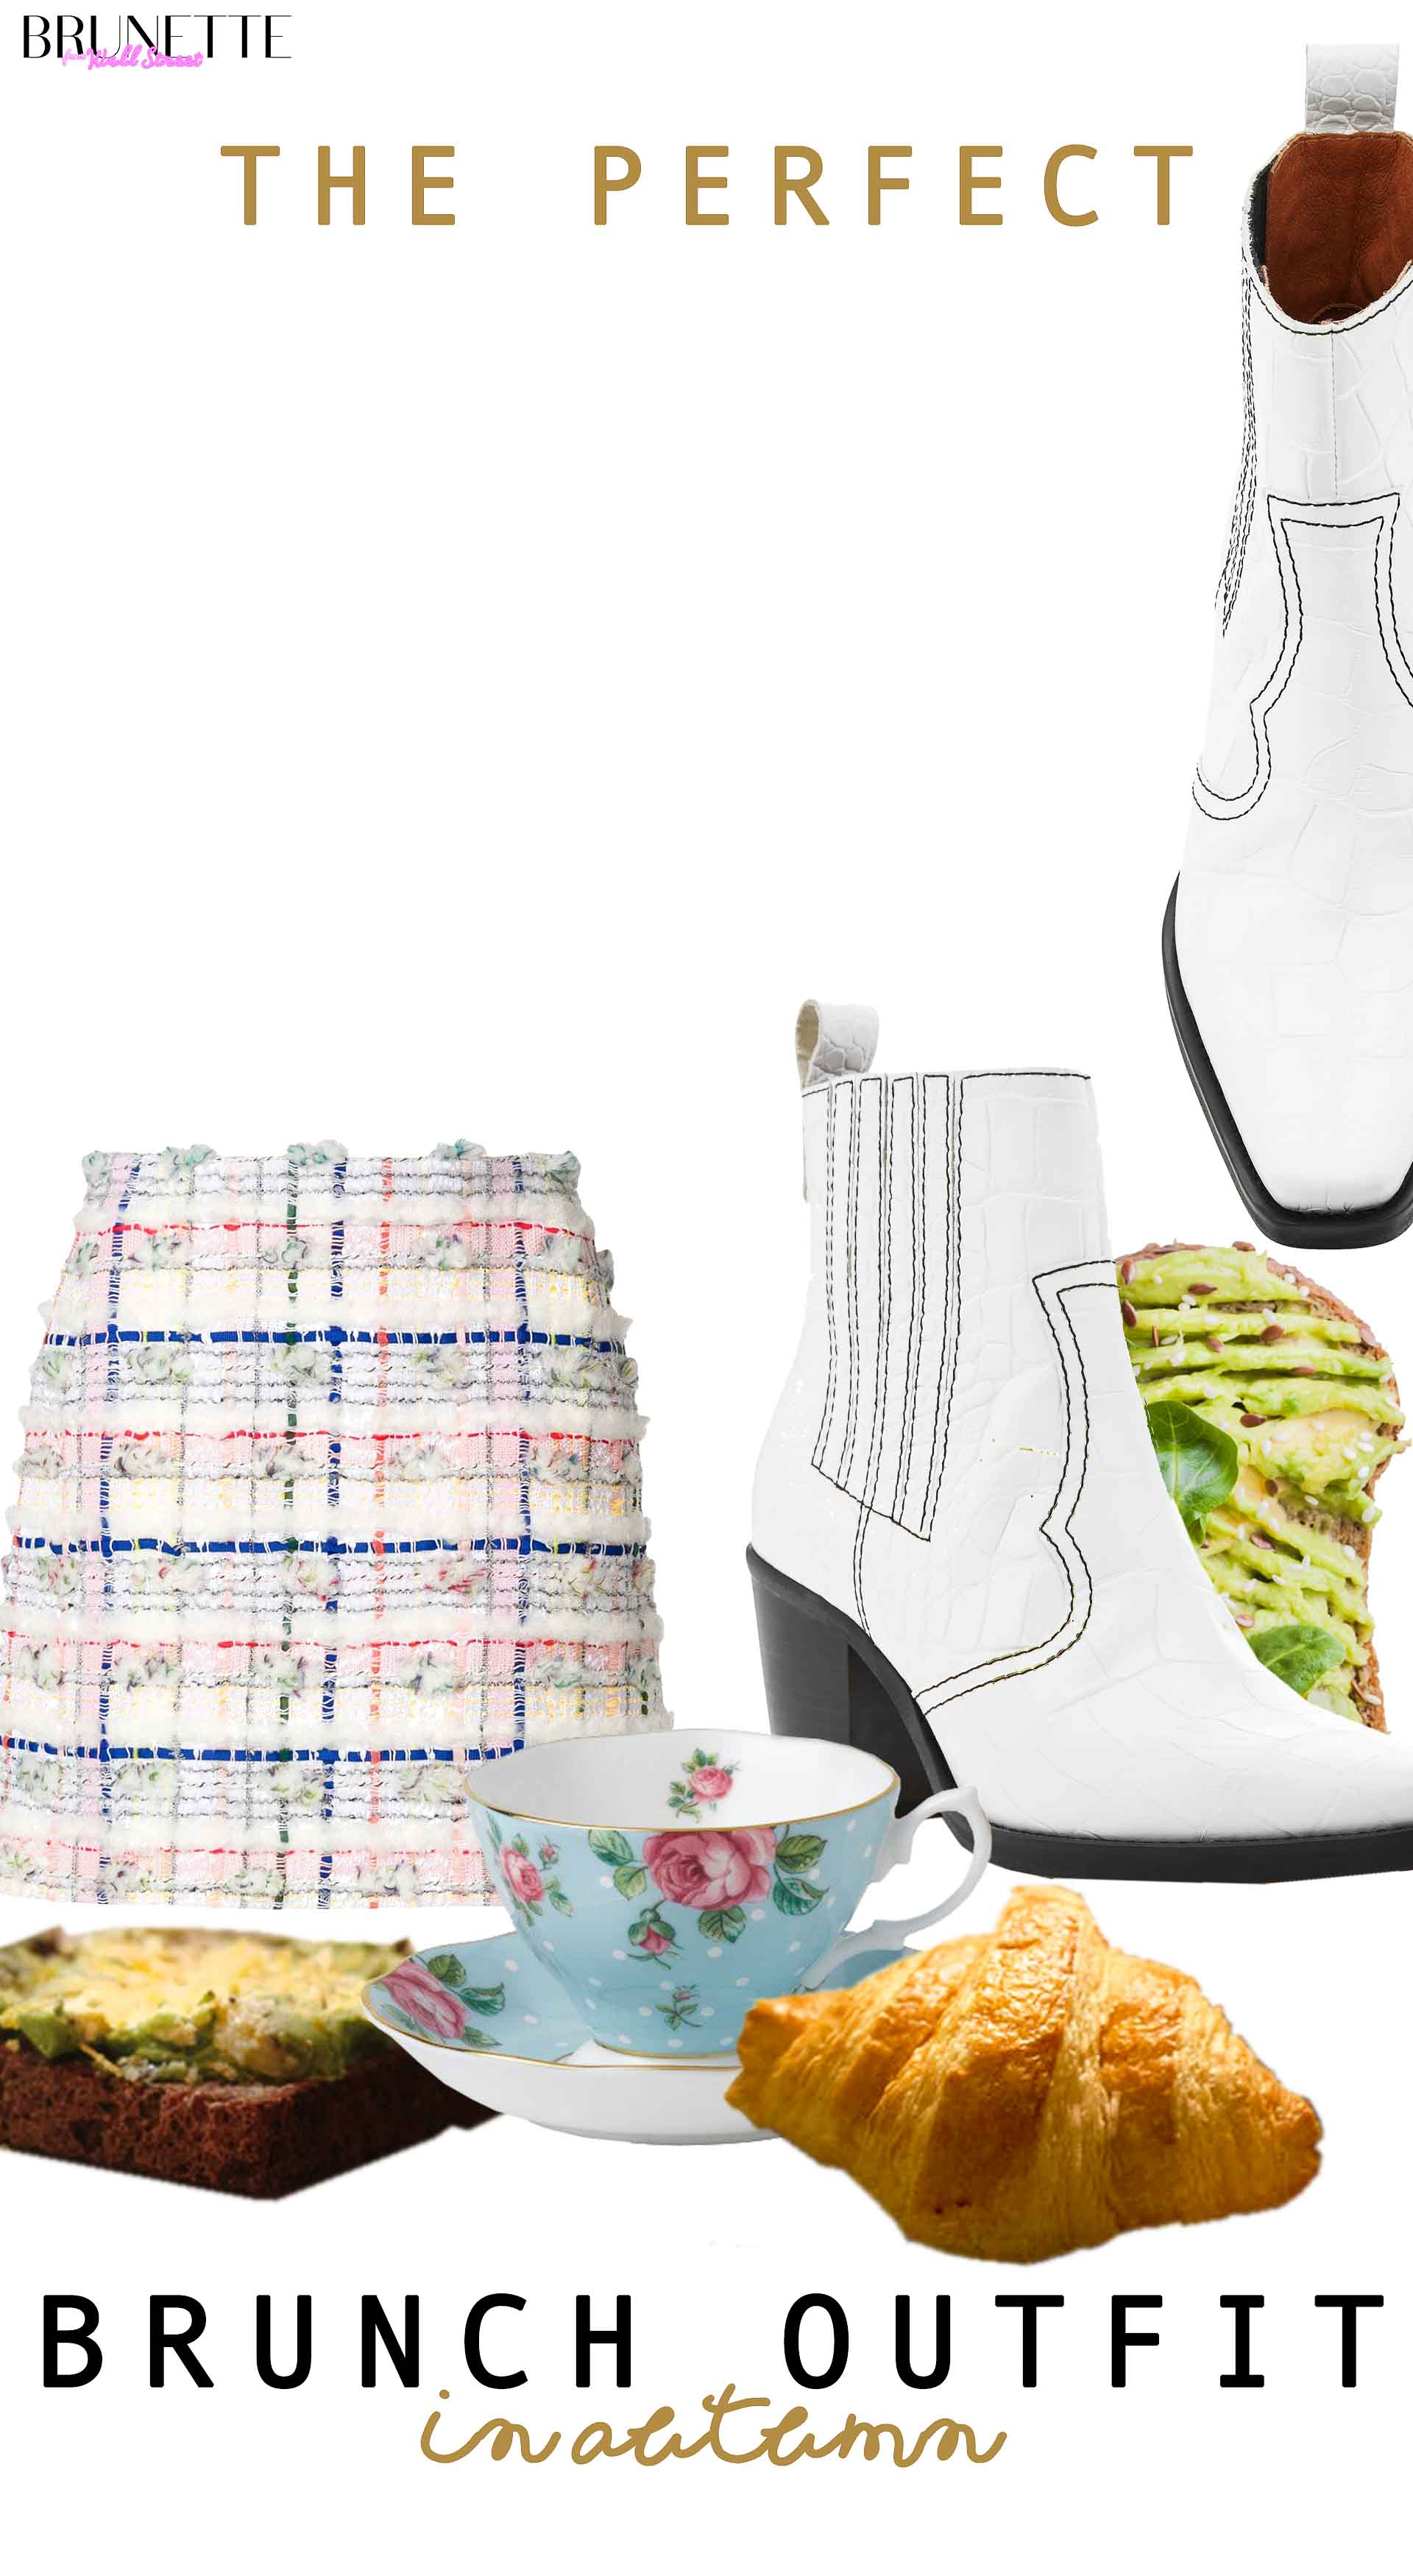 tweed mini skirt, Ganni western boots, croissant, avocado toast, tea cup with text overlay the perfect brunch outfit in autumn